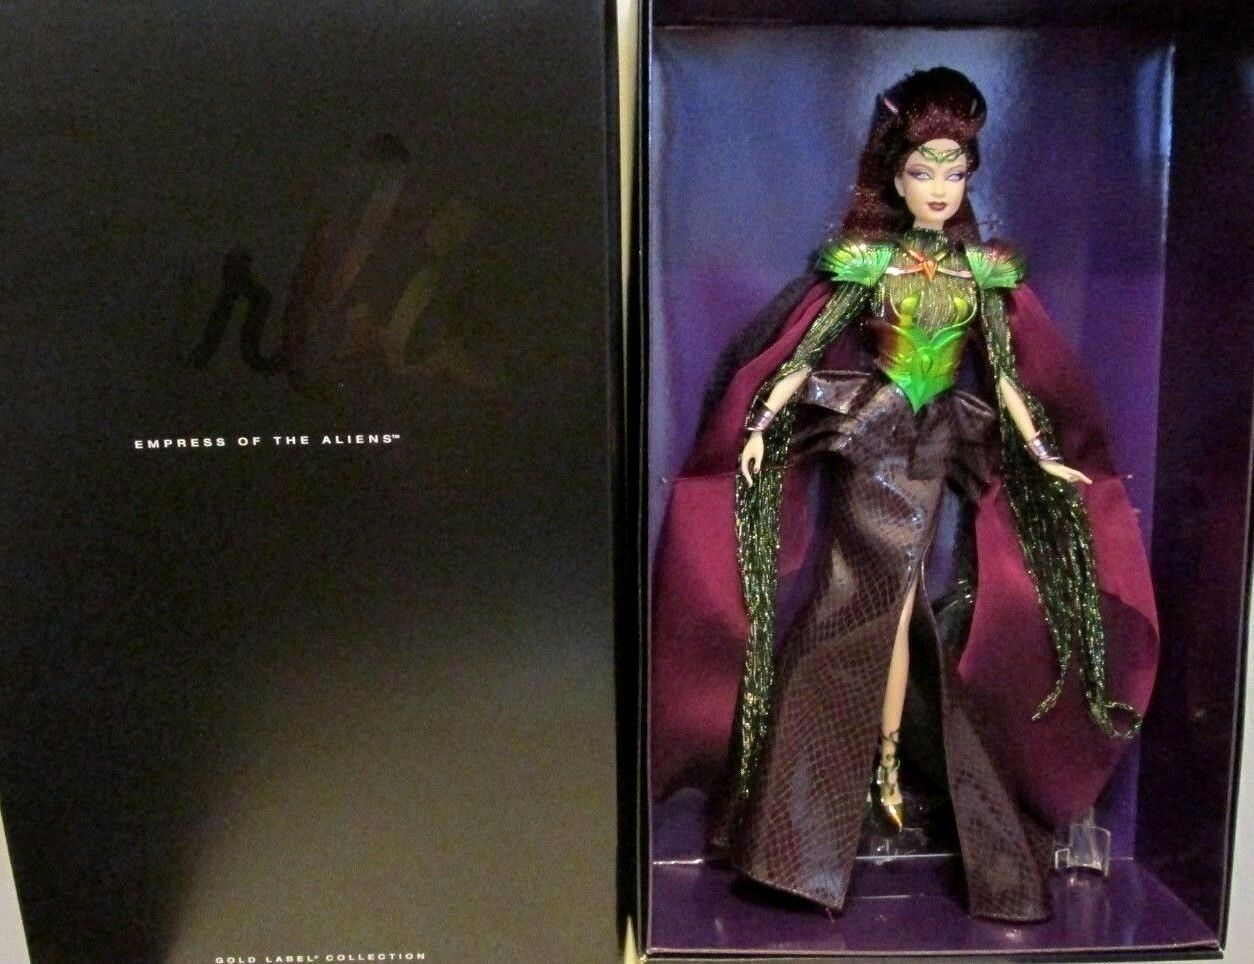 2012 BARBIE DOLL  EMPRESS OF THE ALIENS   Gold LABEL  NRFB  MINT  SHIPPER